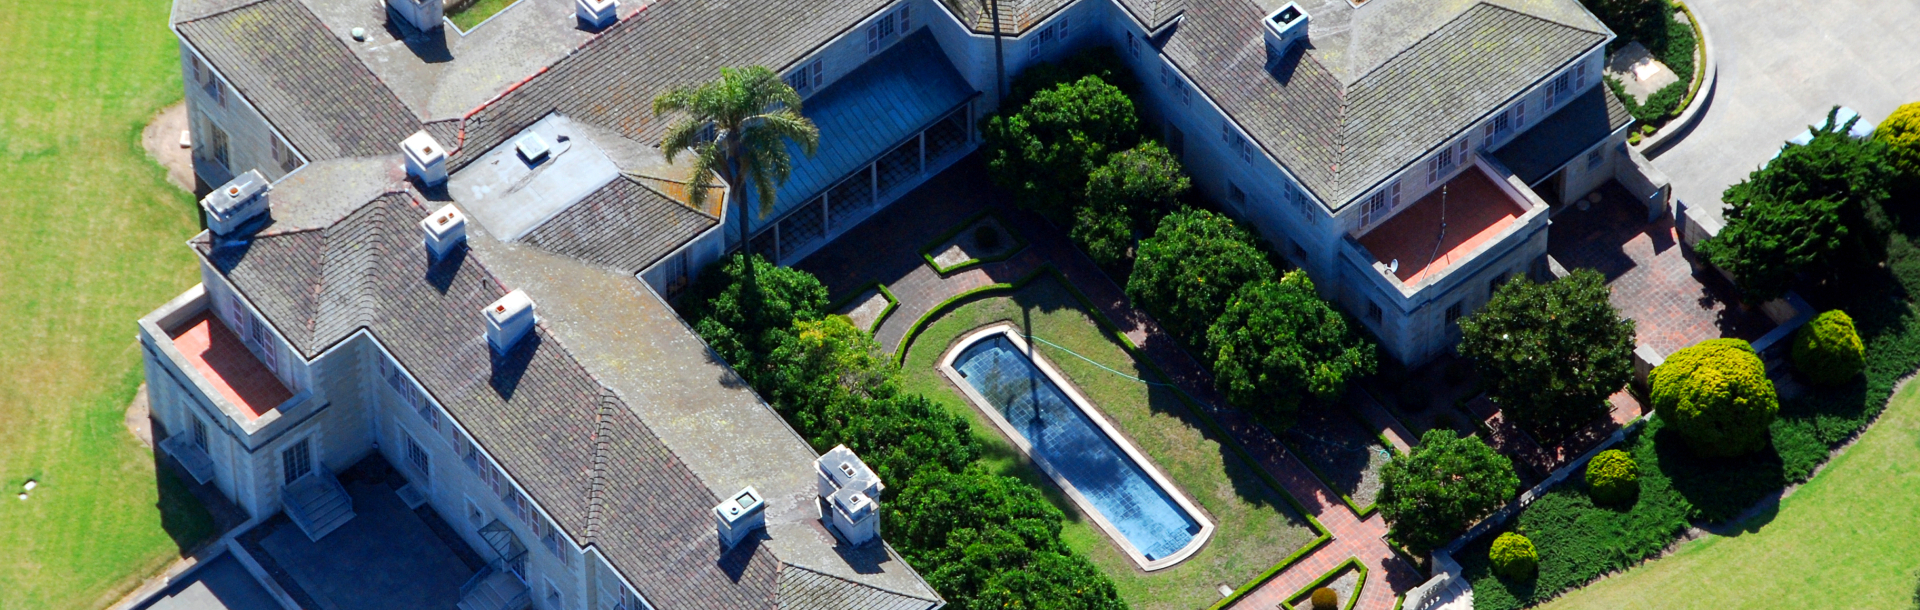 Aerial view of lavish home Bellosguardo in Santa Barbara